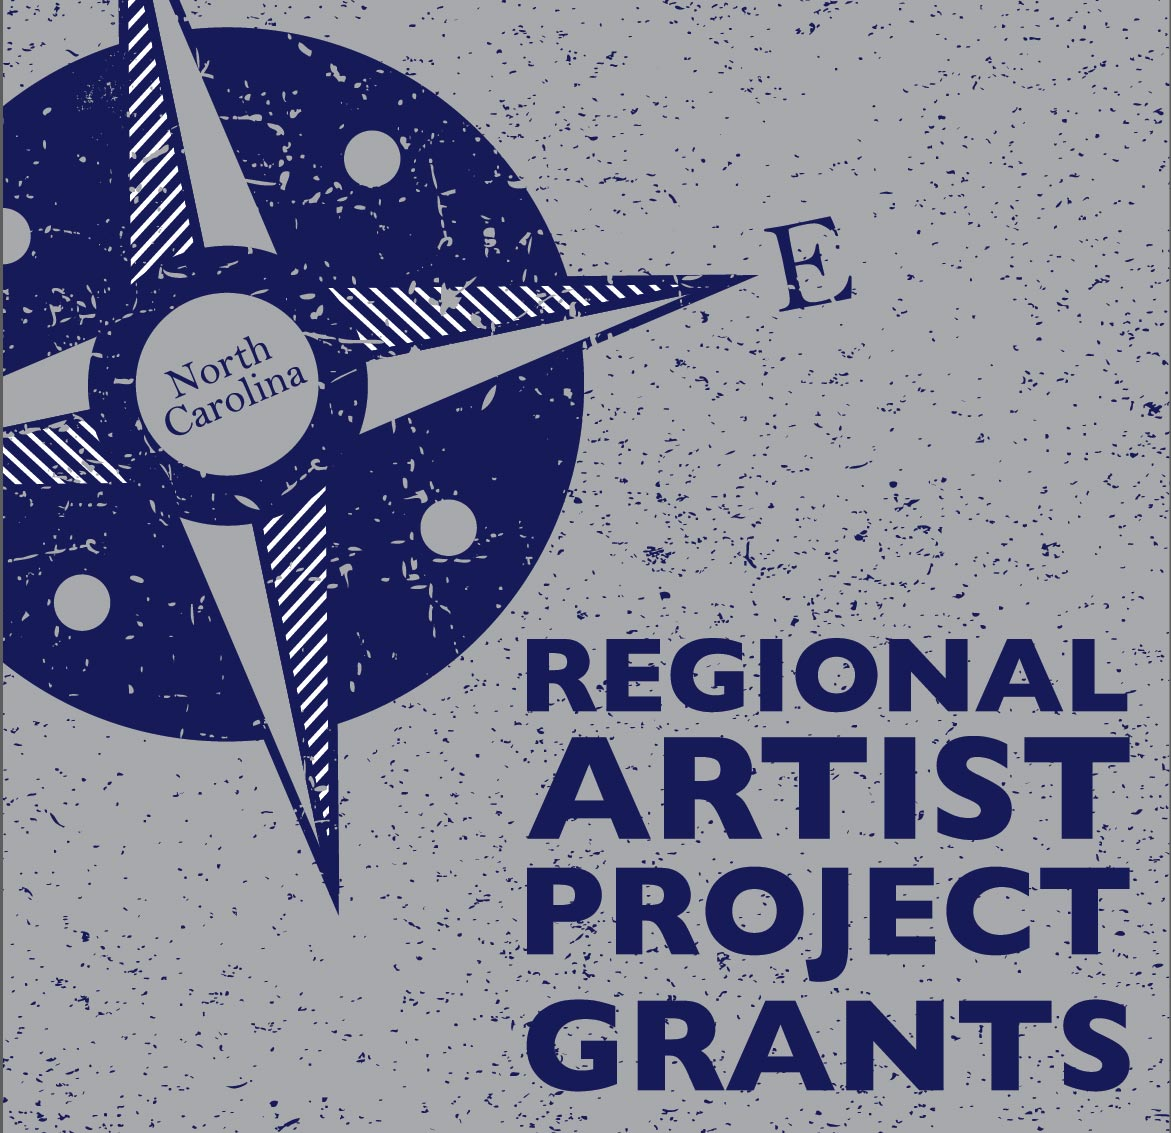 Regional%20artist%20project%20grant%20square